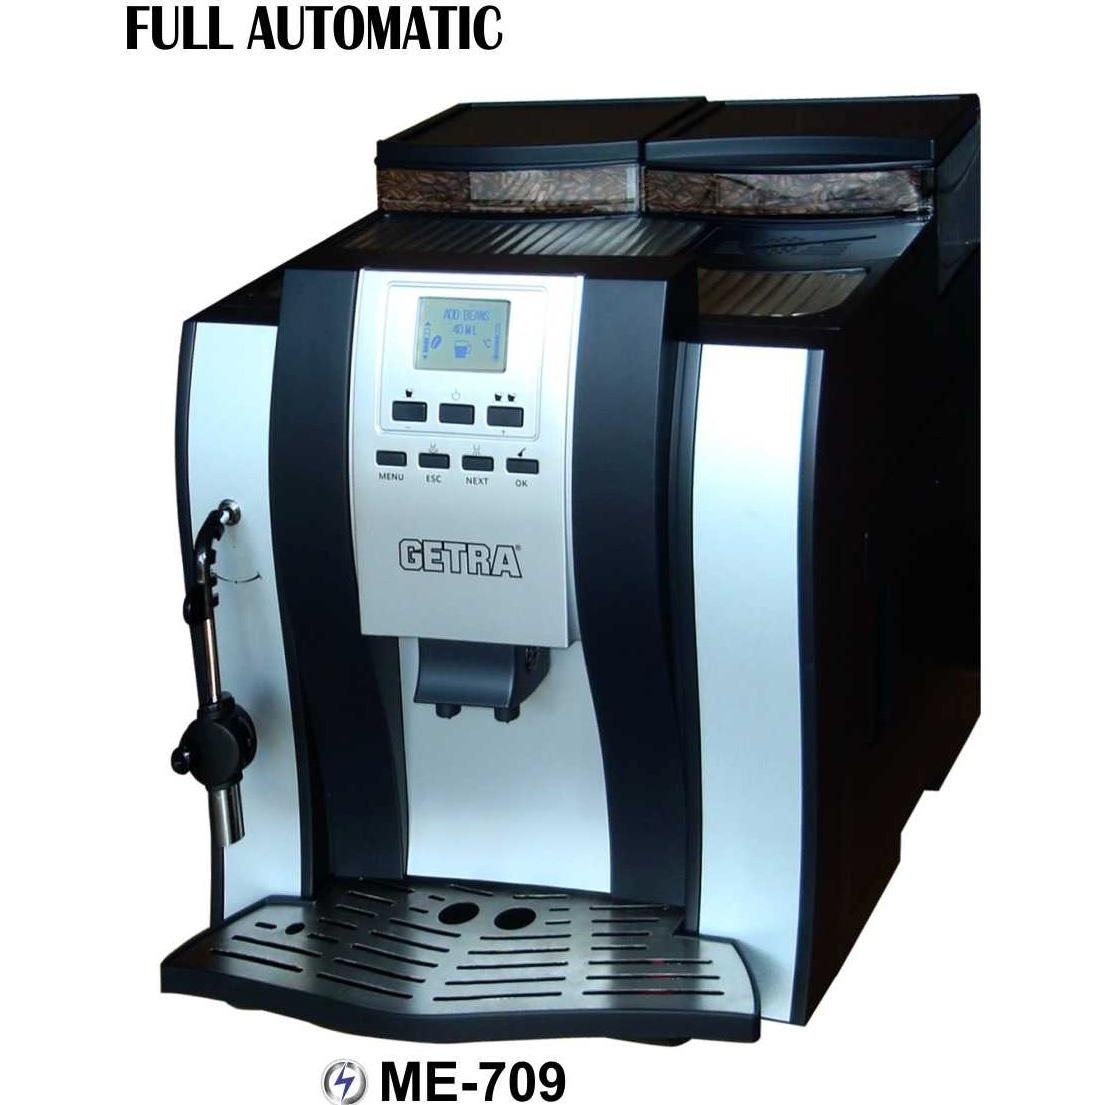 Staresso Handy Espresso Coffee Maker Sp 200 Black Daftar Harga Rok Presso Manual Classic Getra Machine Full Automatic Me 709